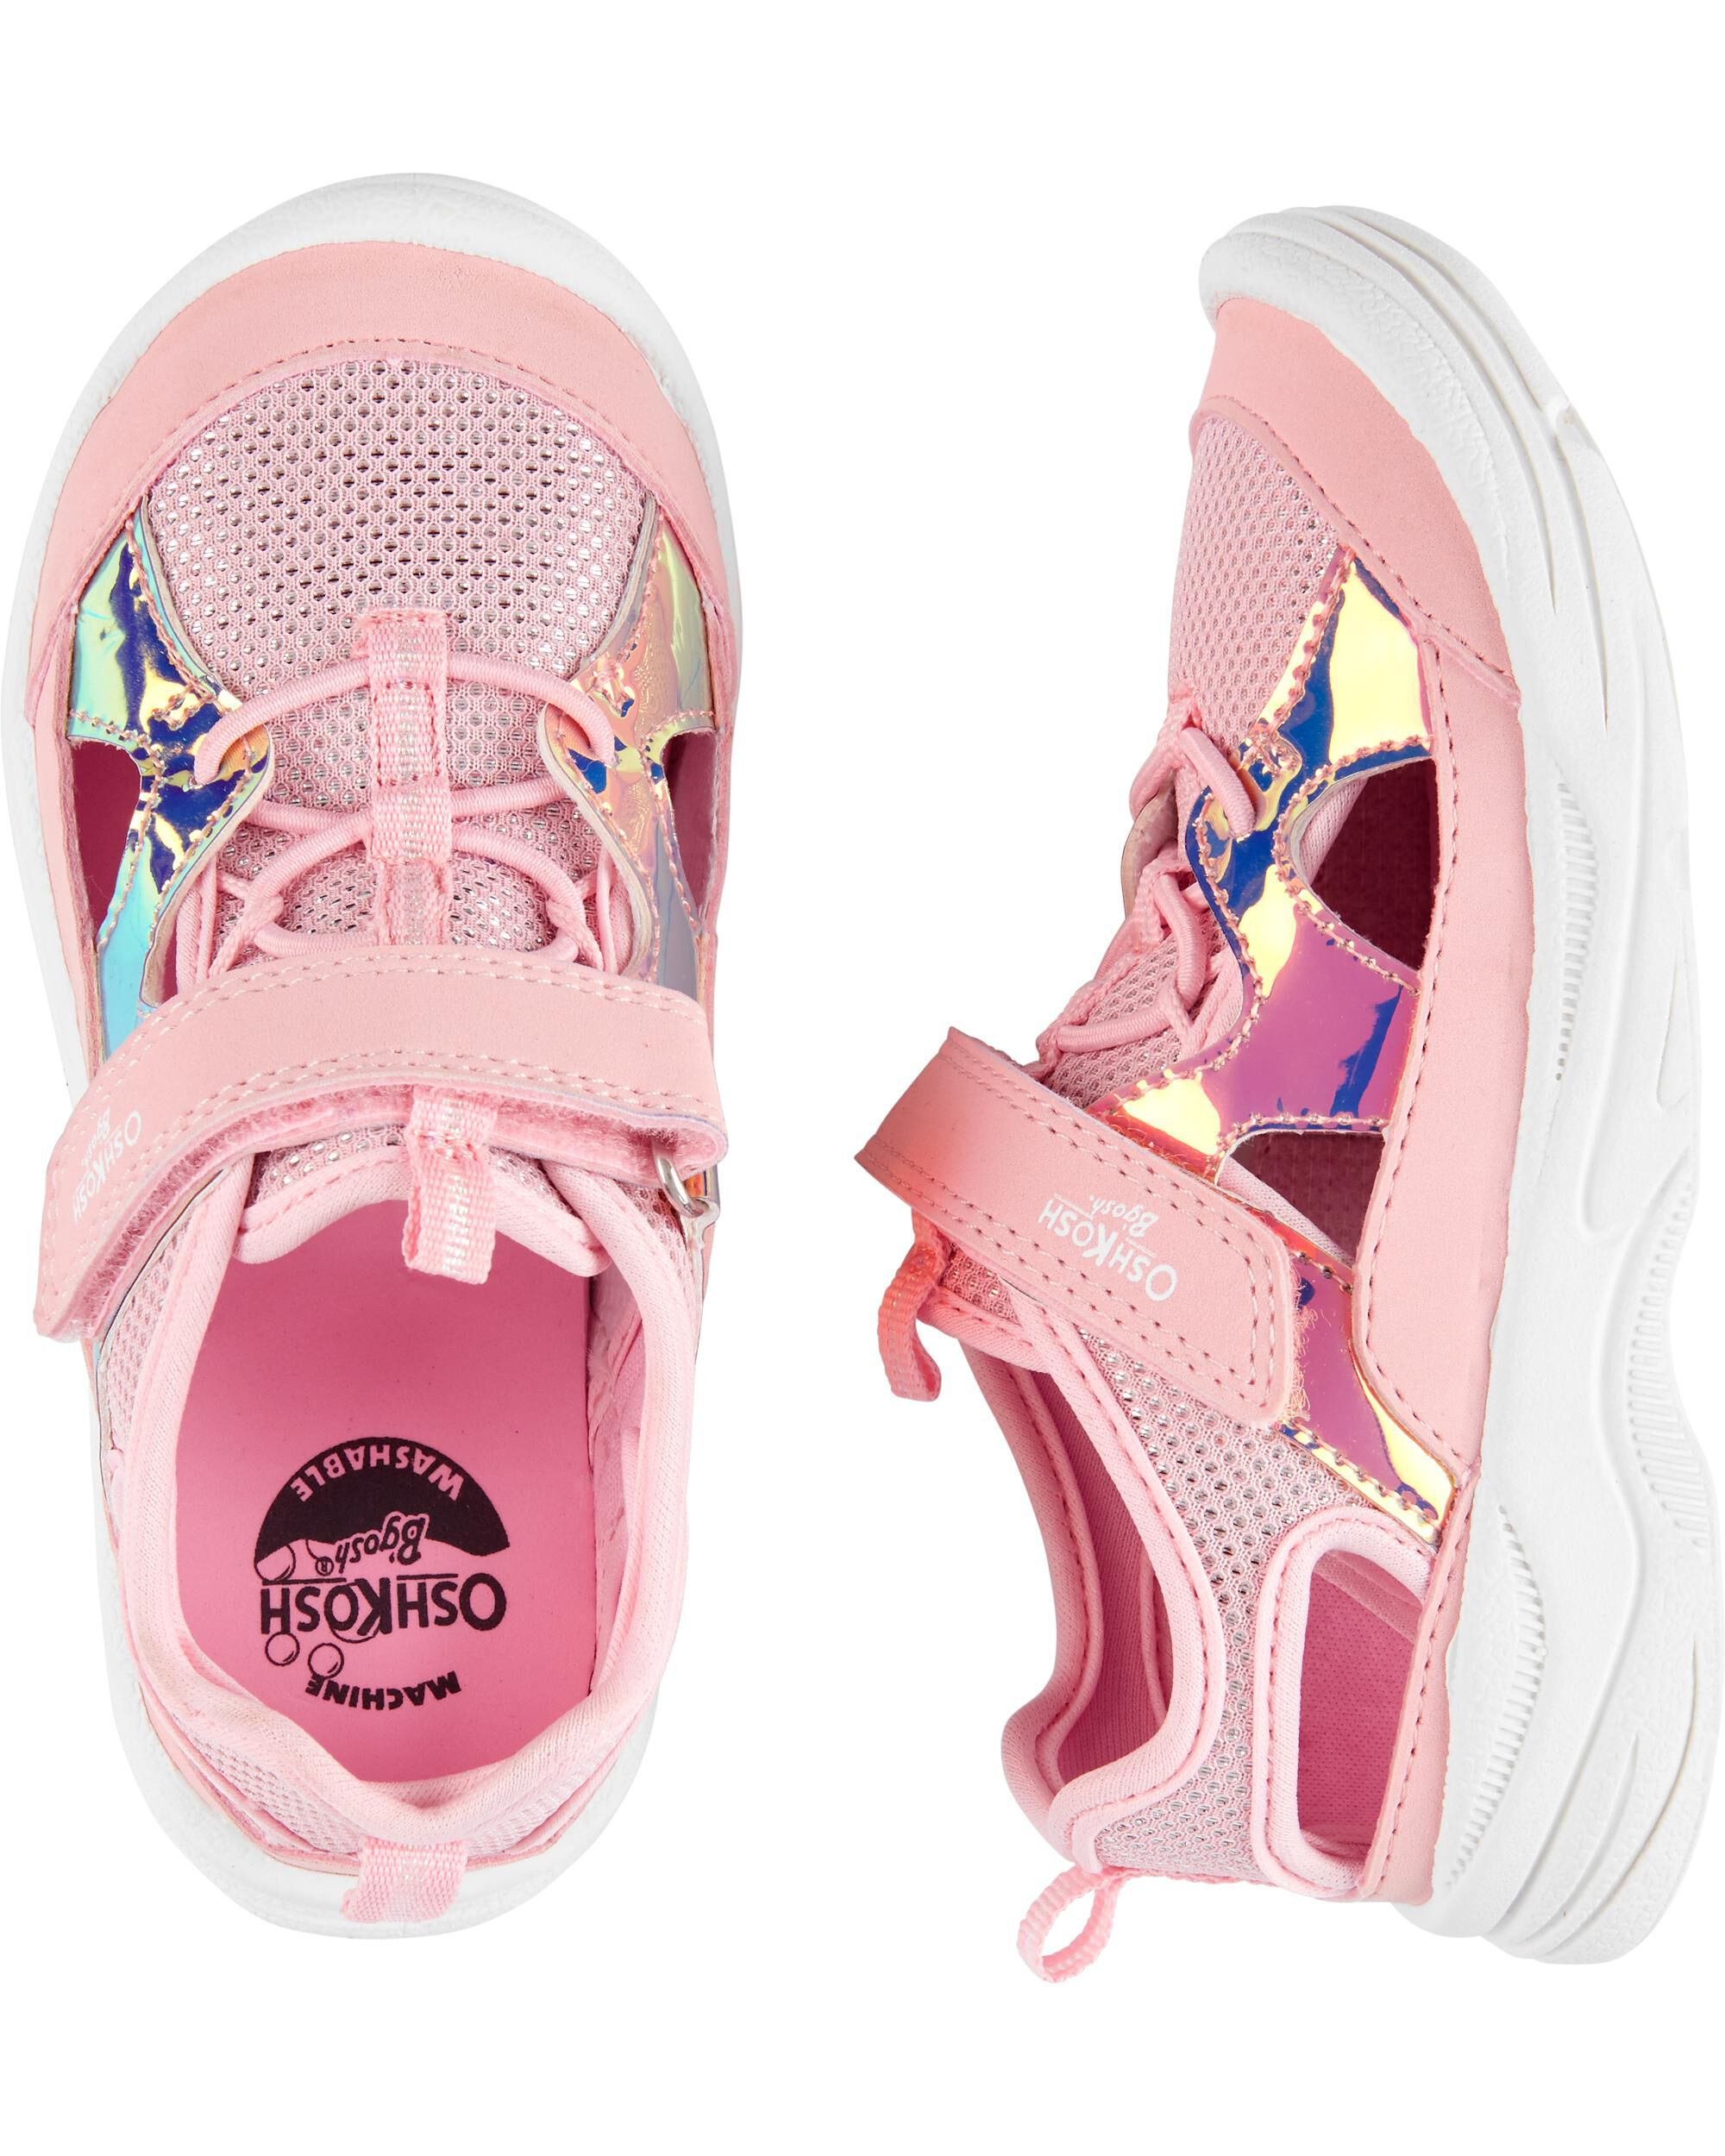 Holographic Bump Toe Athletic Sneakers